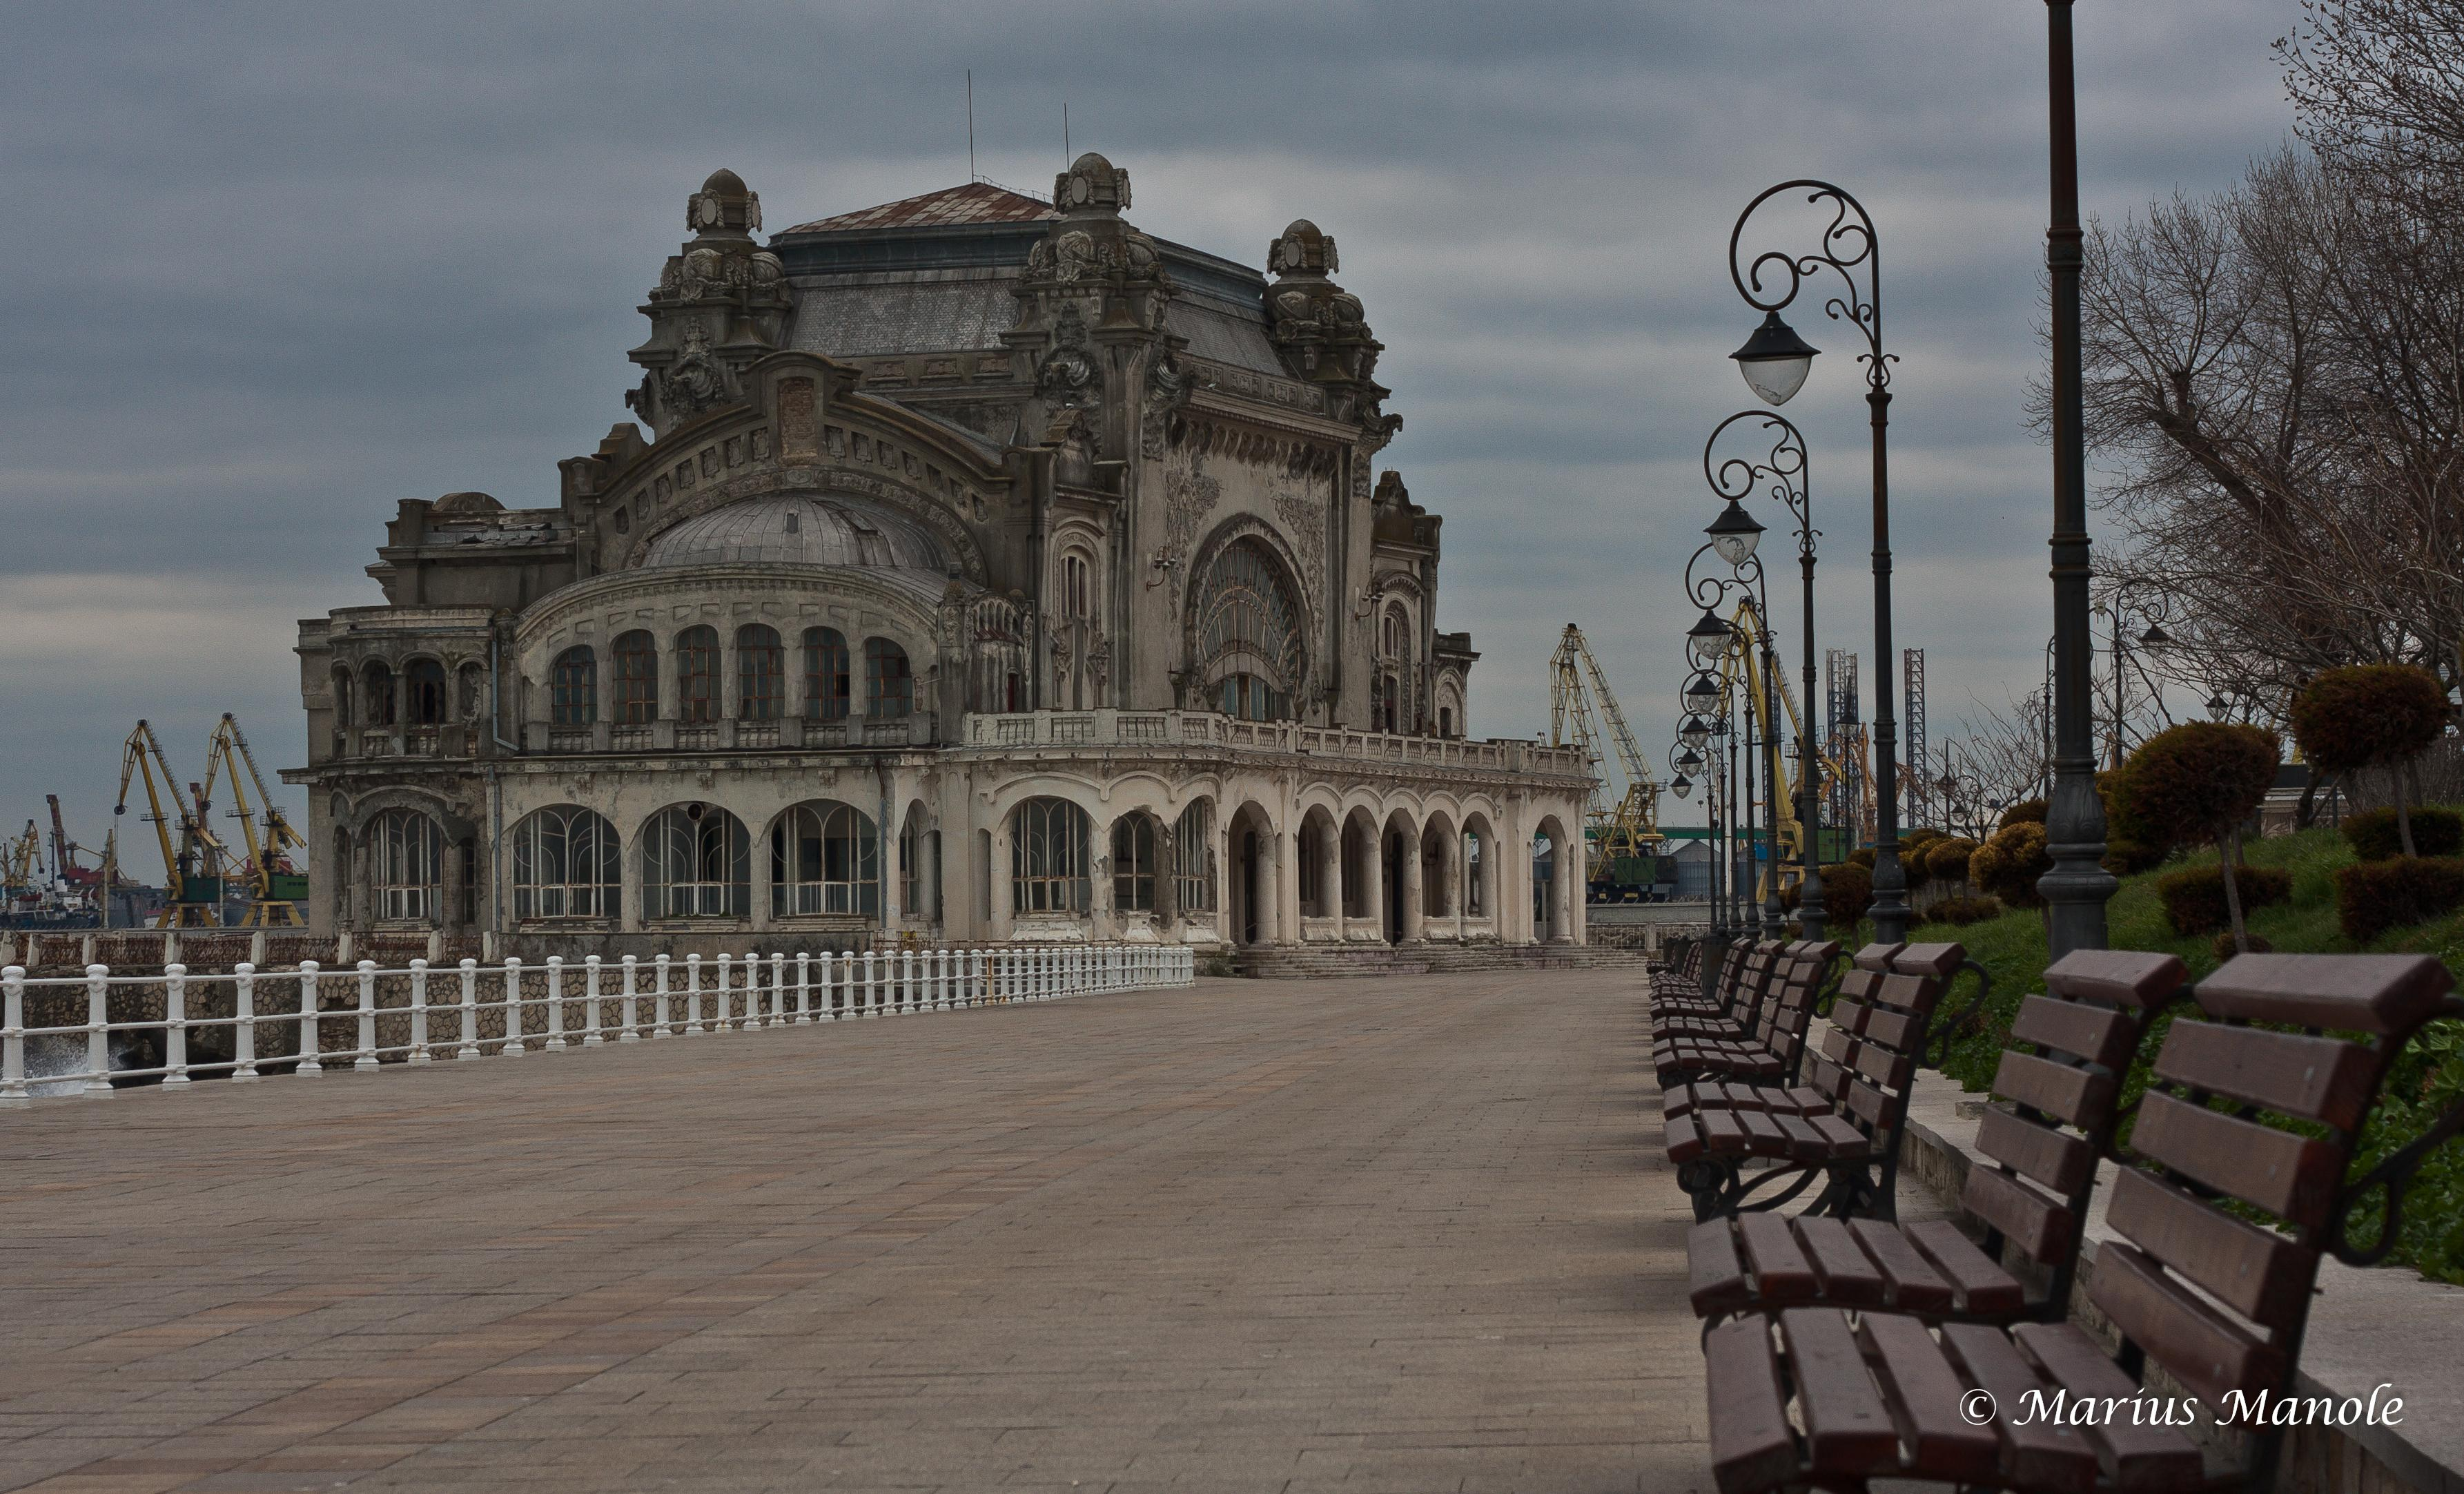 500px Photo ID: 144455227 – Completed between the two World Wars in art nouveau style according to the plans of the architects Daniel Renard and Petre Antonescu, the Casino features sumptuous architecture and a wonderful view of the sea. The pedestrian are